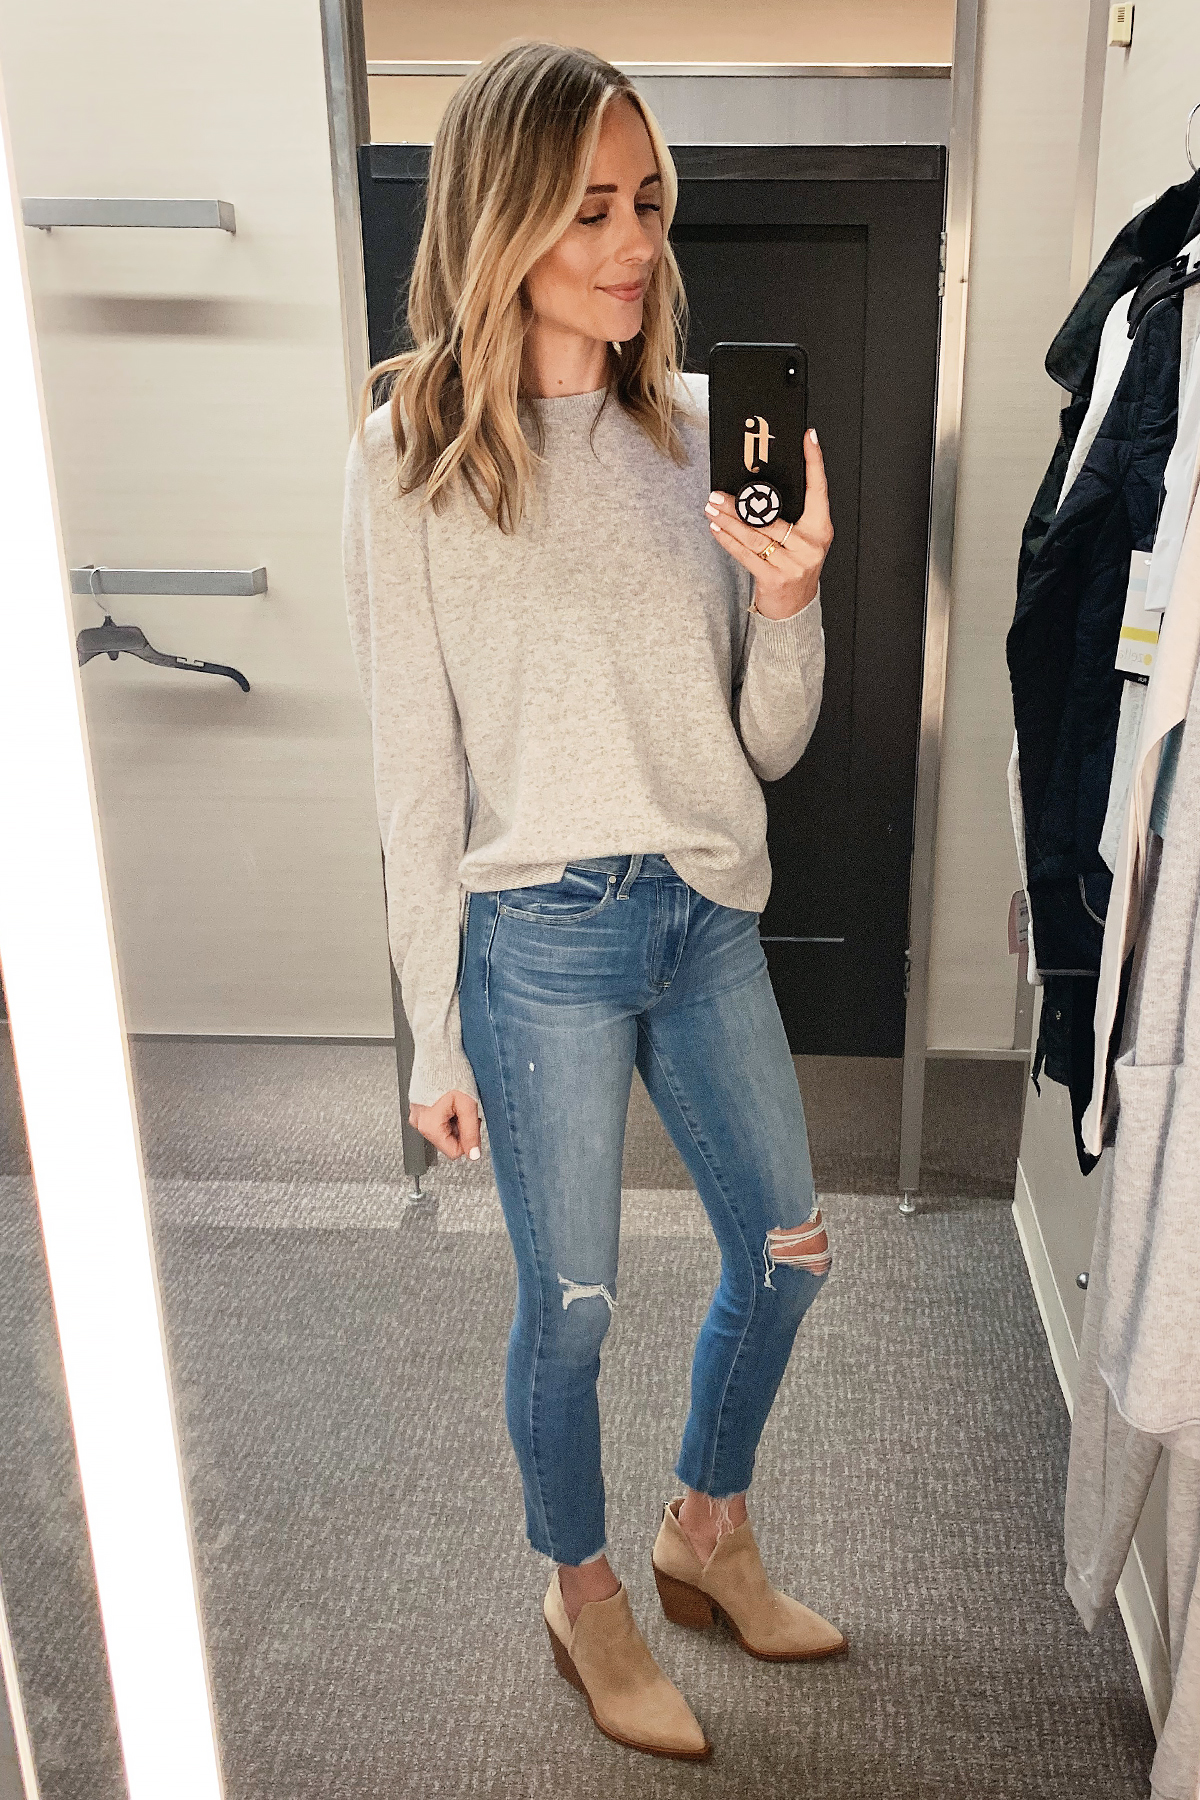 Fashion Jackson Wearing Nordstrom Annivesary Sale Vince Grey Cashmere Sweater Paige Ripped Skinny Jeans Vince Camuto Tan Booties